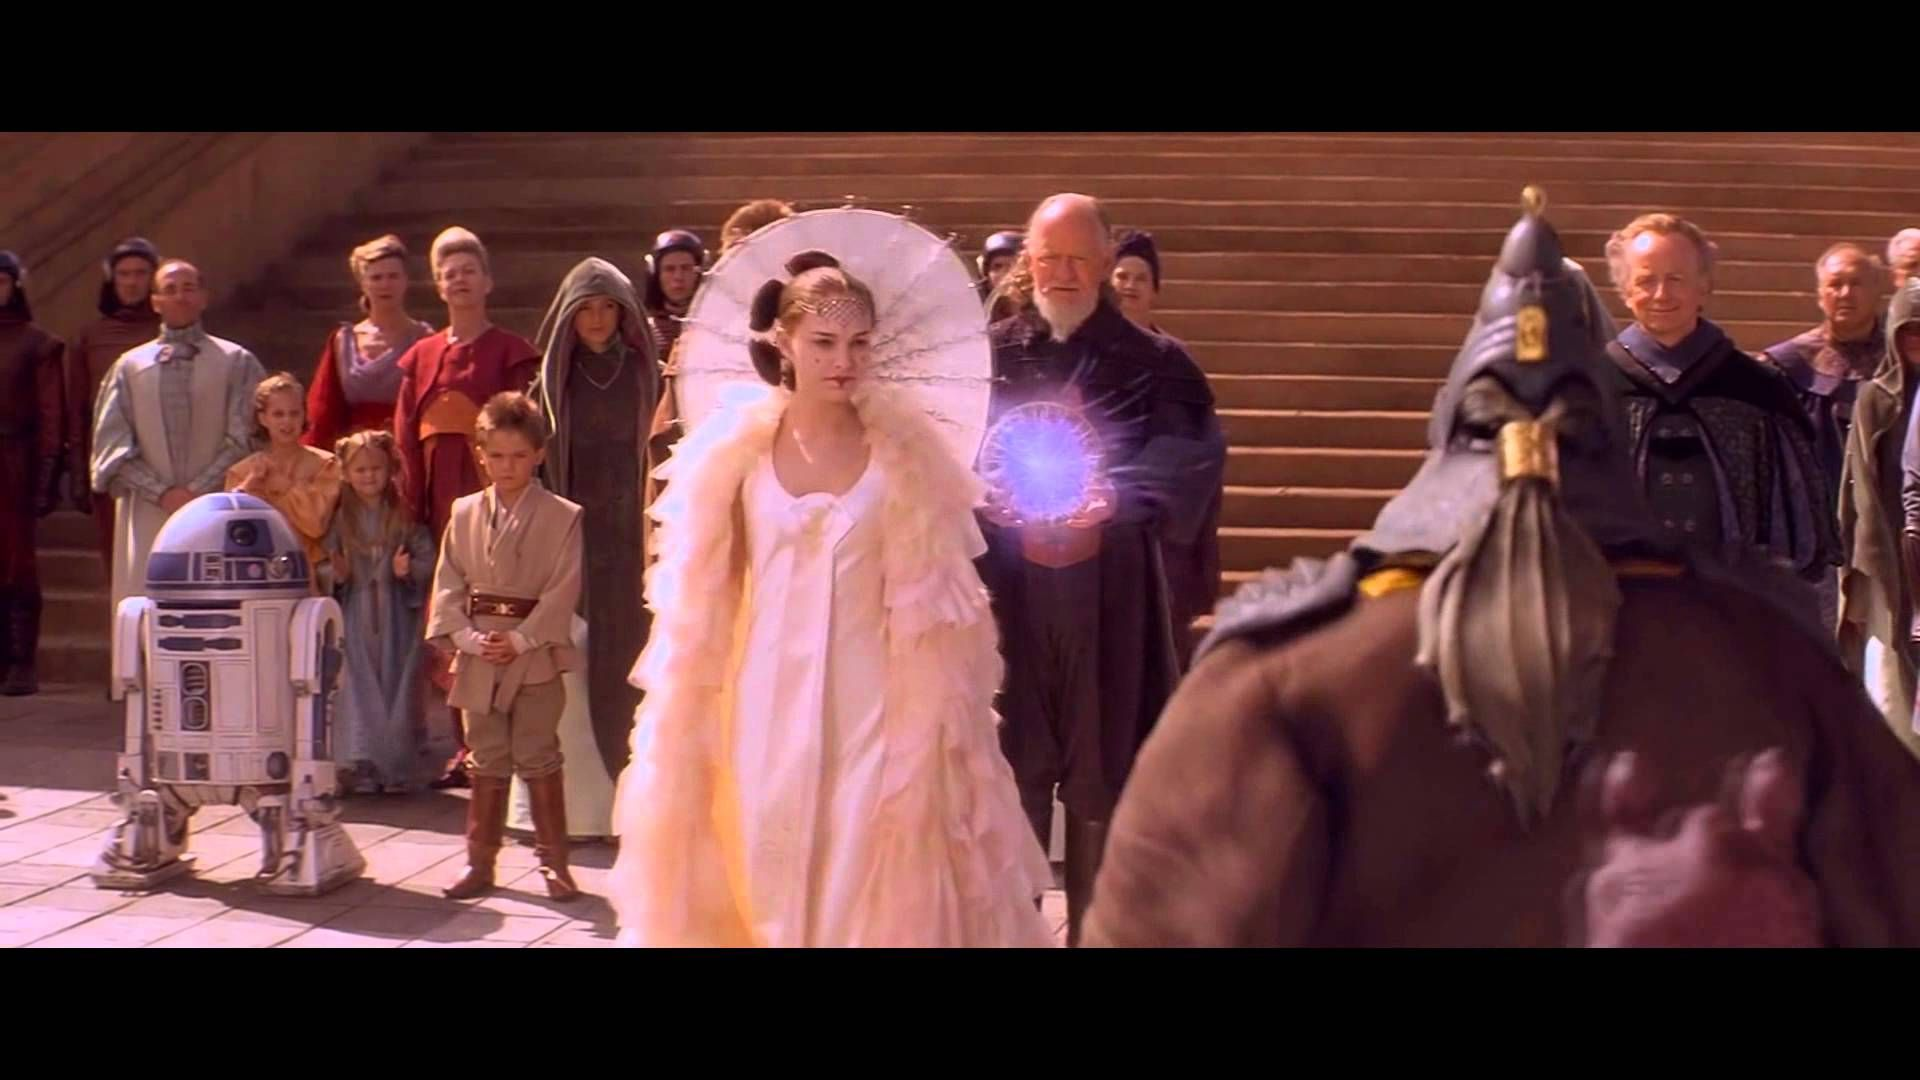 Star Wars Episode Iii Revenge Of The Sith Ending Hd 1080p Description From Notebookvideo Ru I Searched For This Star Wars Episodes Celebrities Star Wars